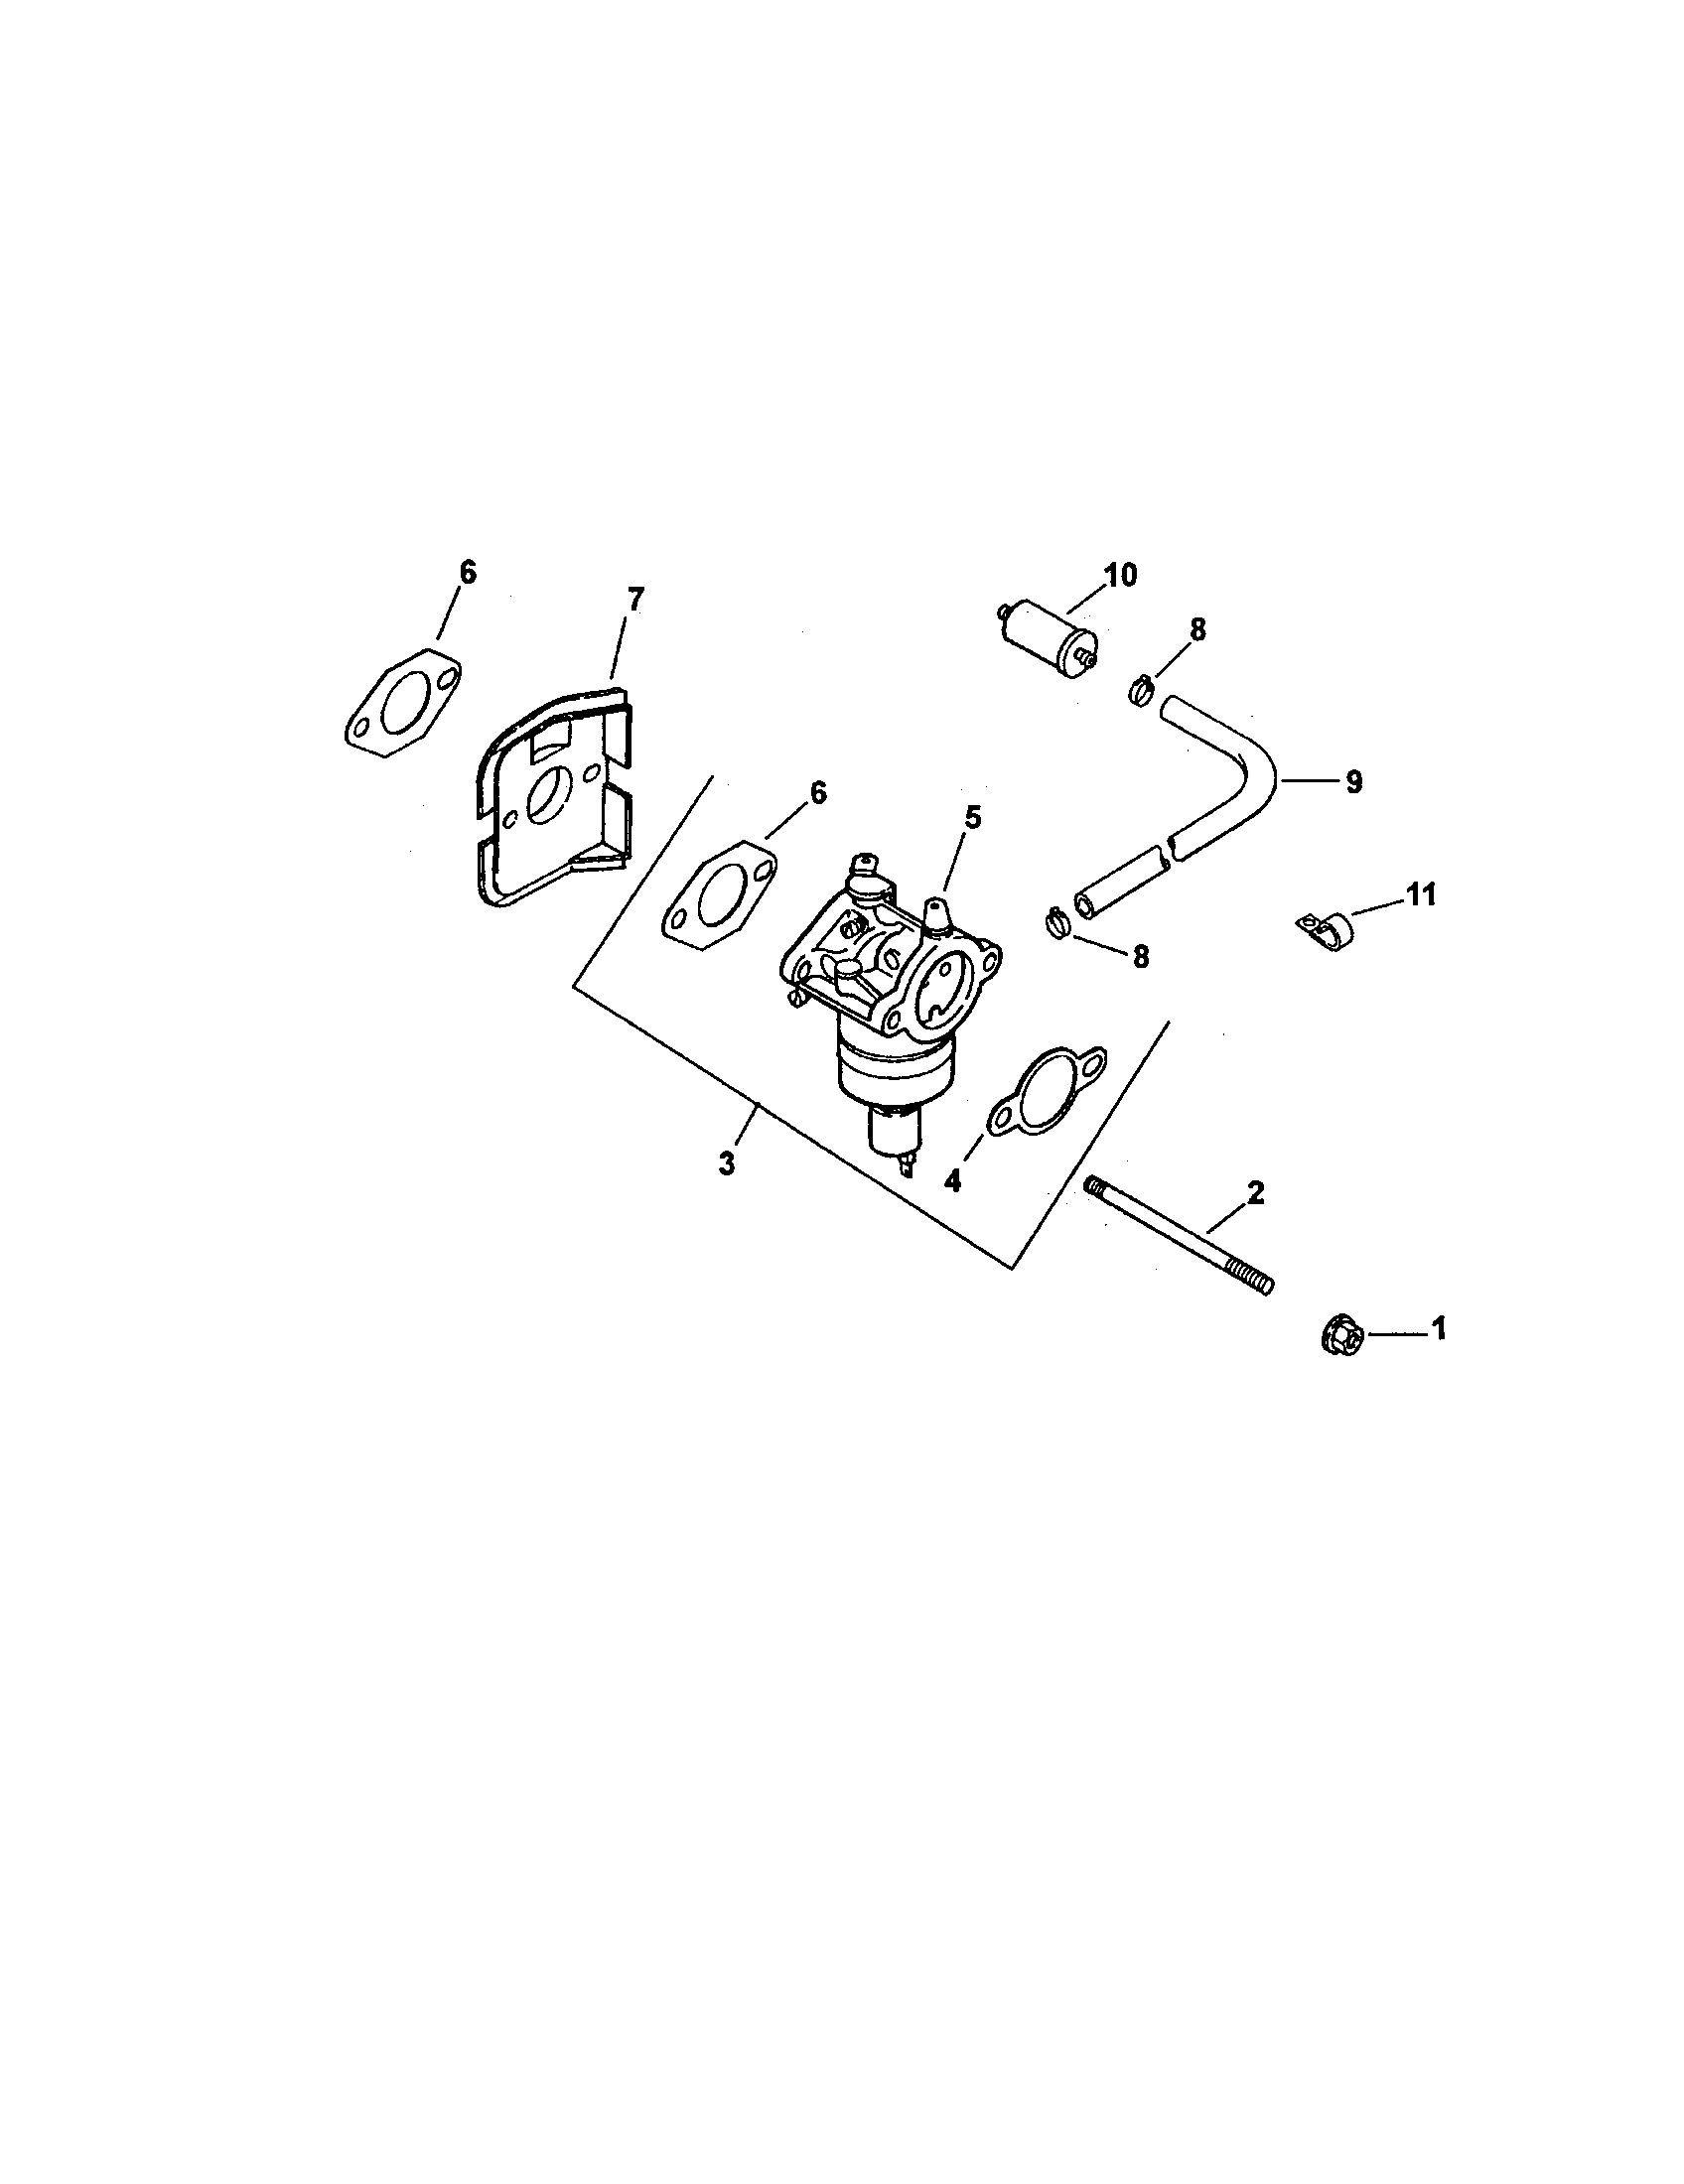 Kohler model CV490S-27507 engine genuine parts